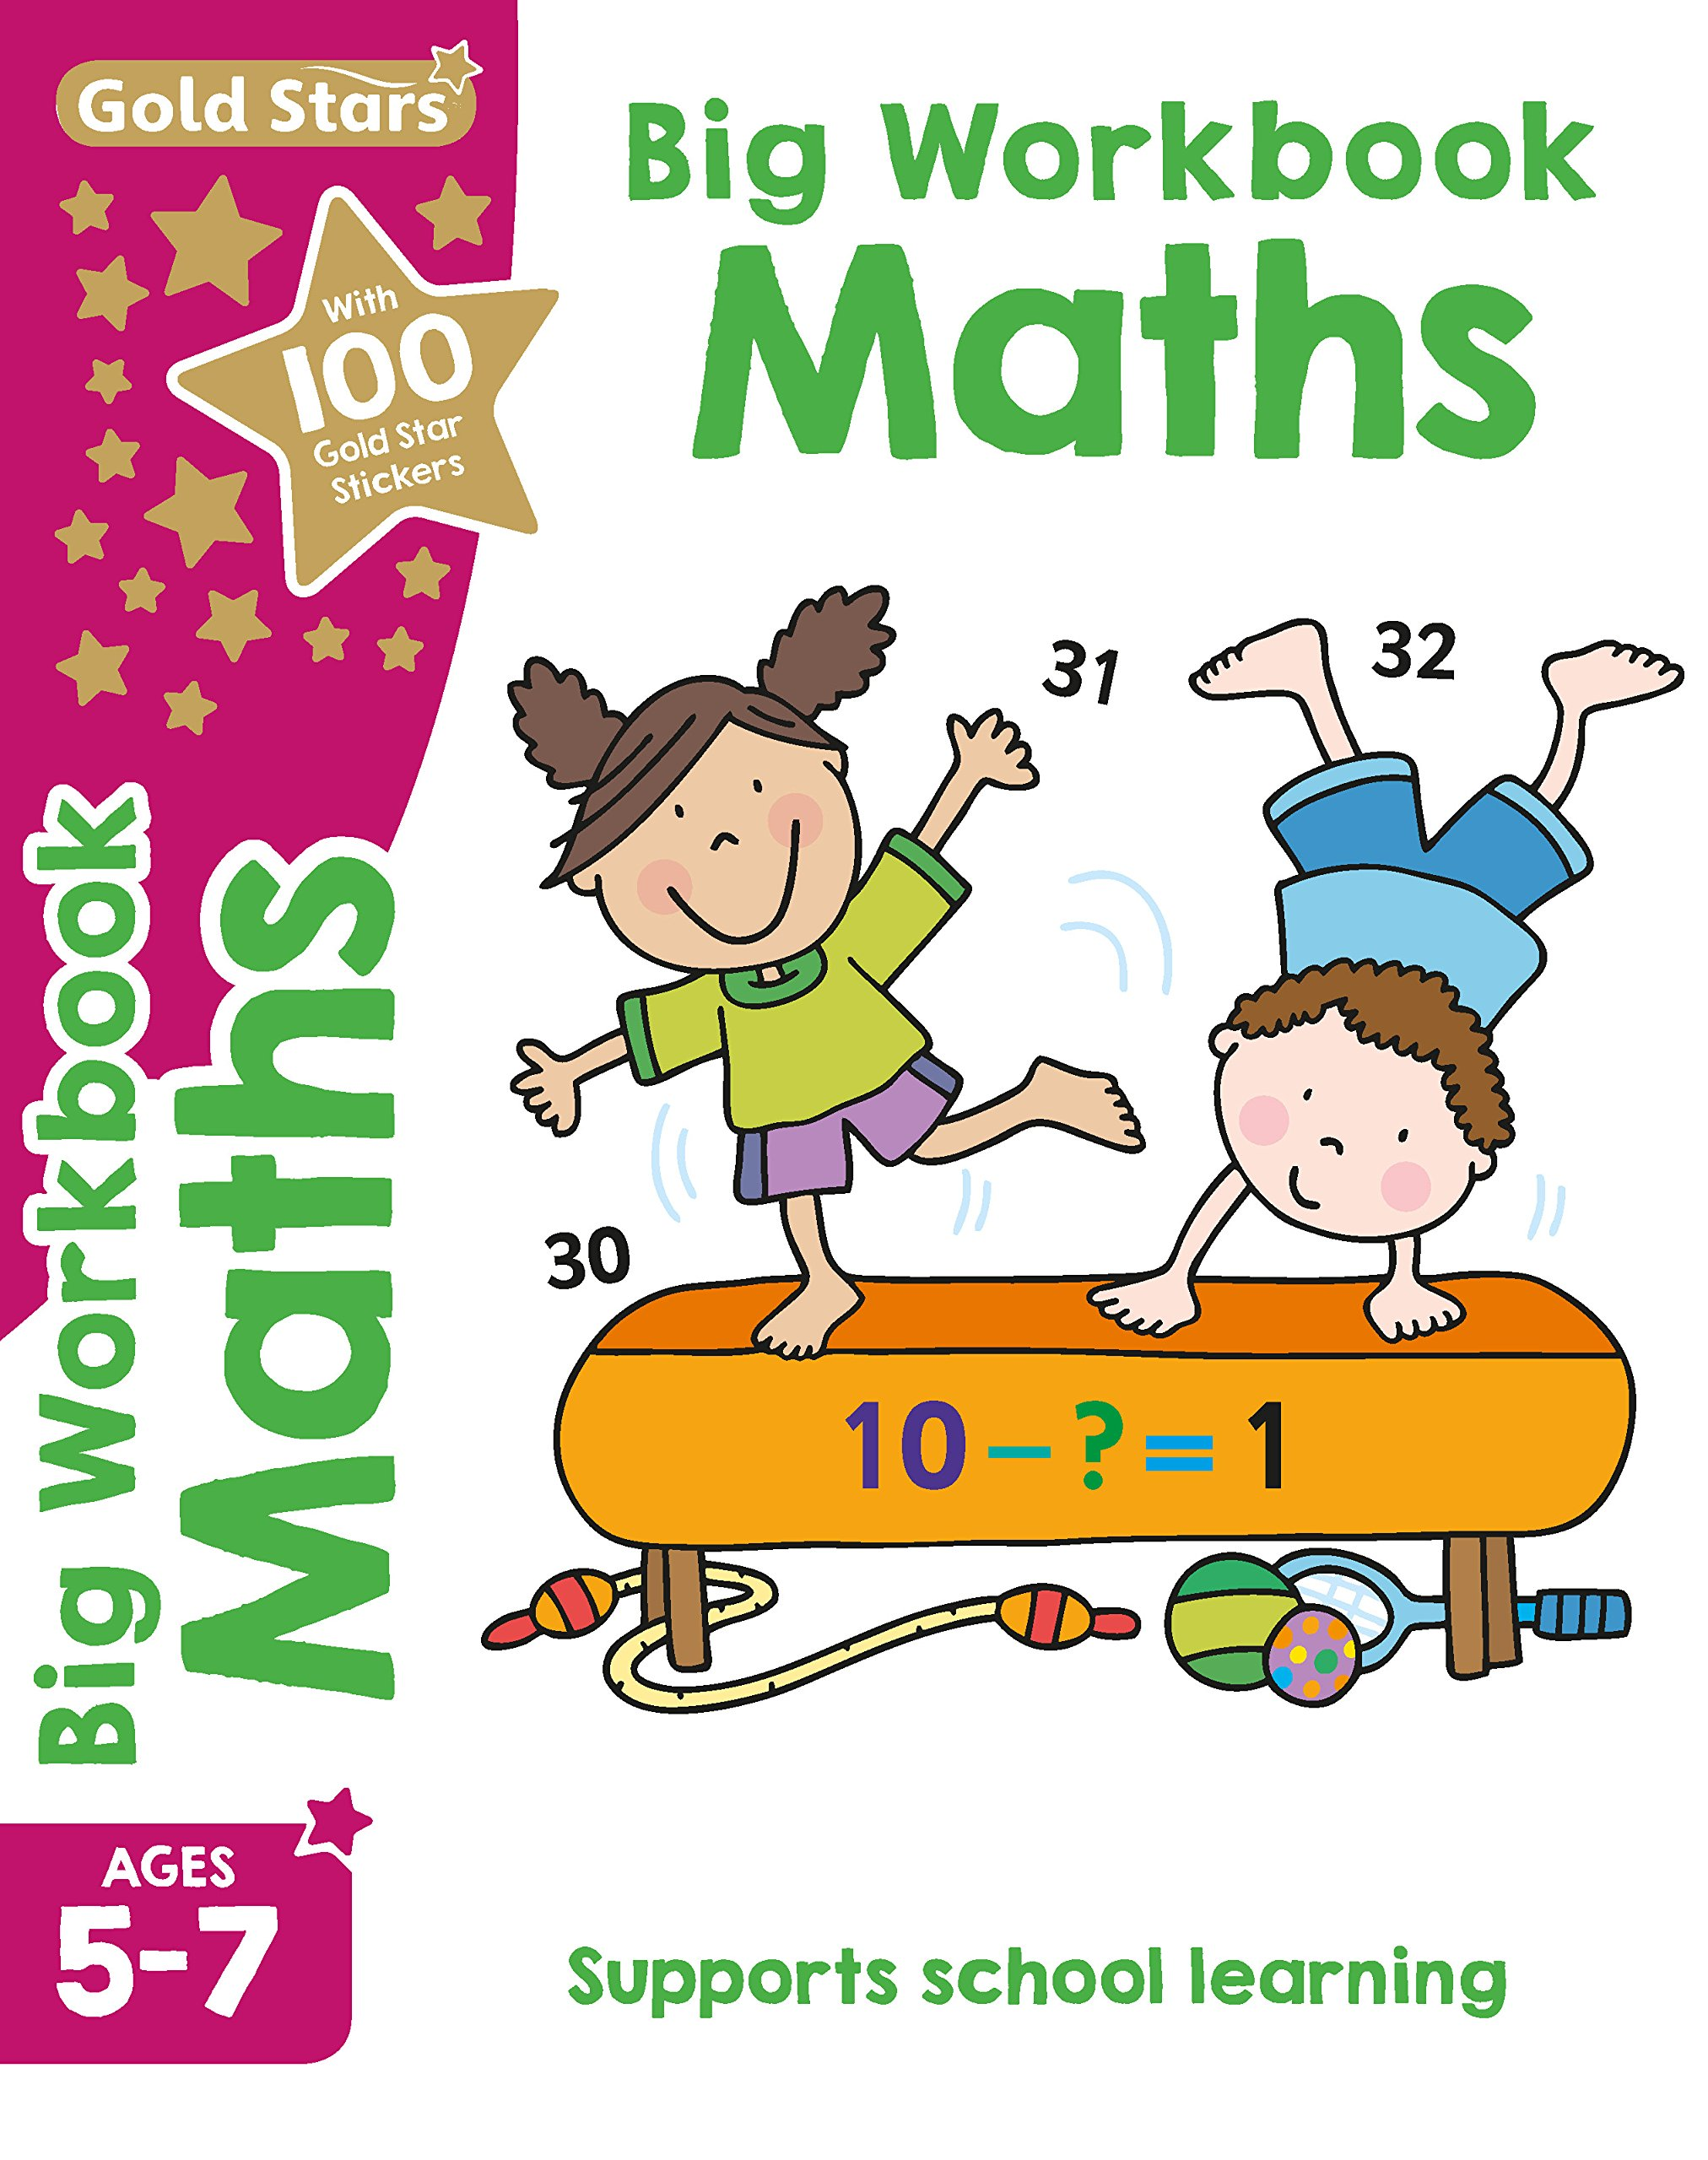 Gold Stars Big Workbook Maths Ages 5-7 Key Stage 1: Supports